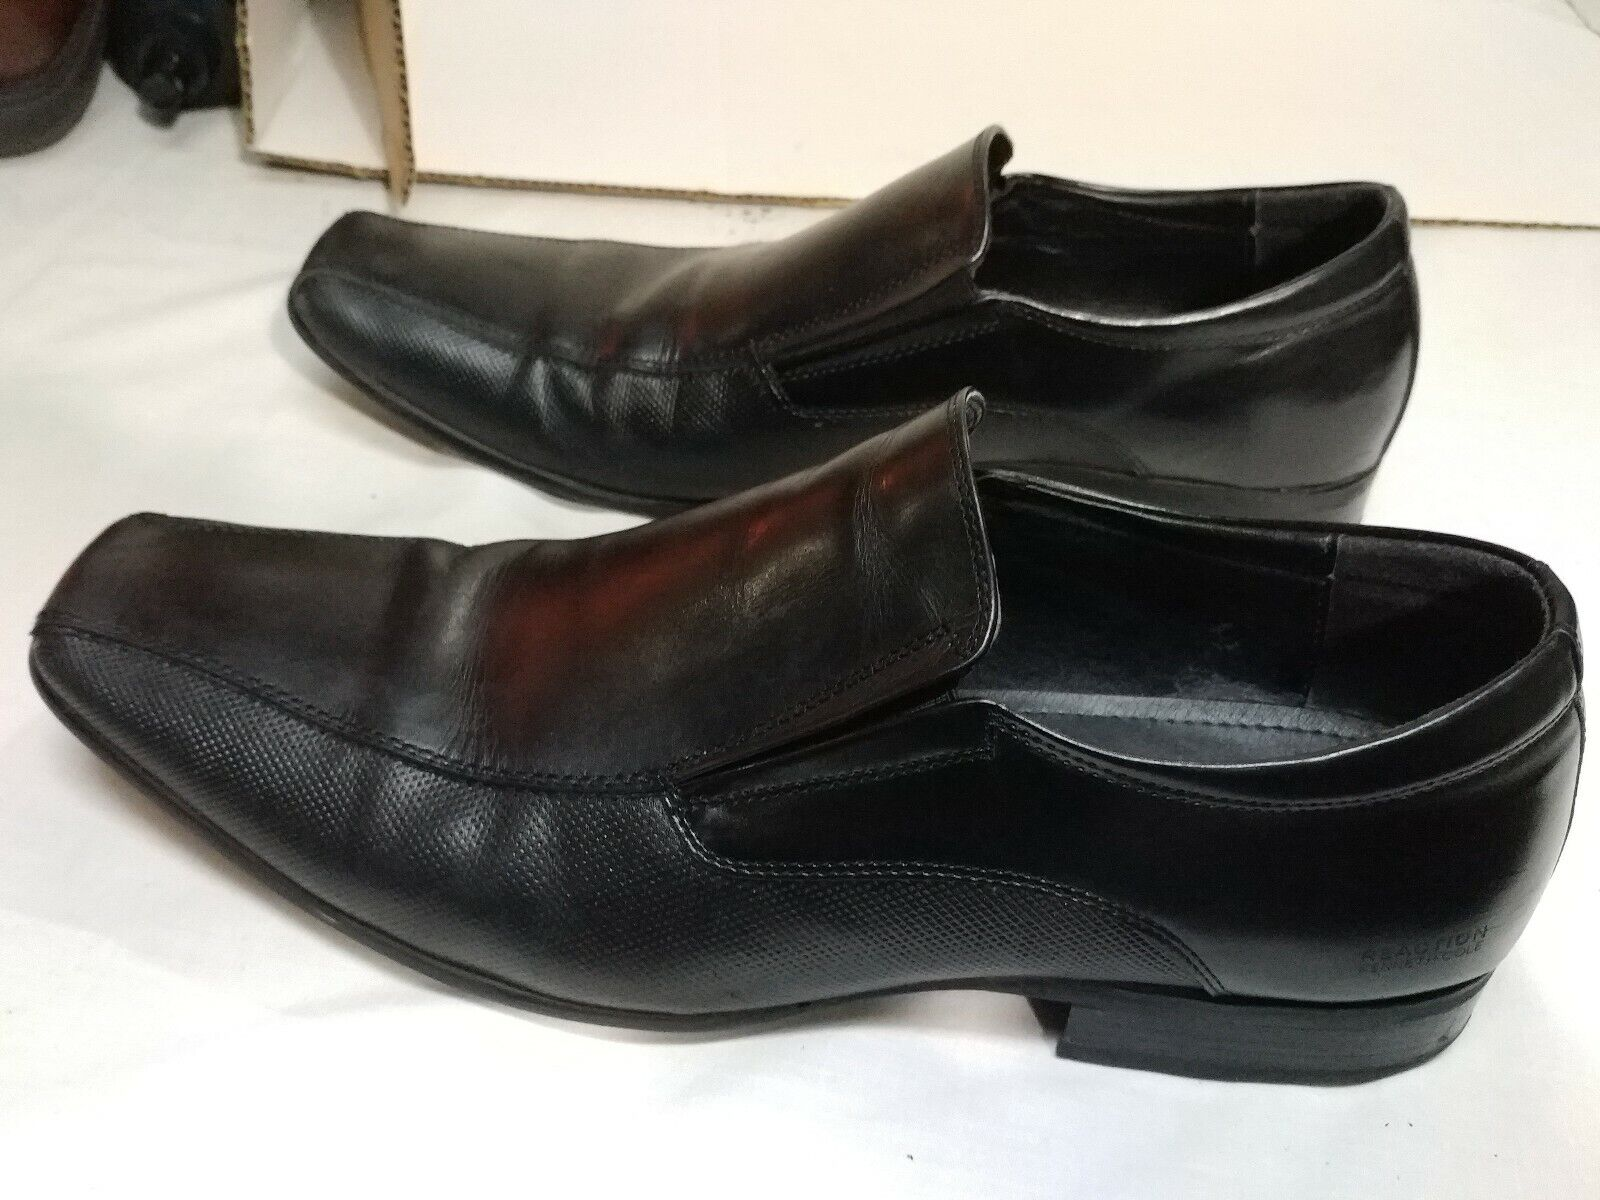 KENNETH COLE REACTION OTHER HALF BIKE TOE LOAFER IN BLACK preowned 11m